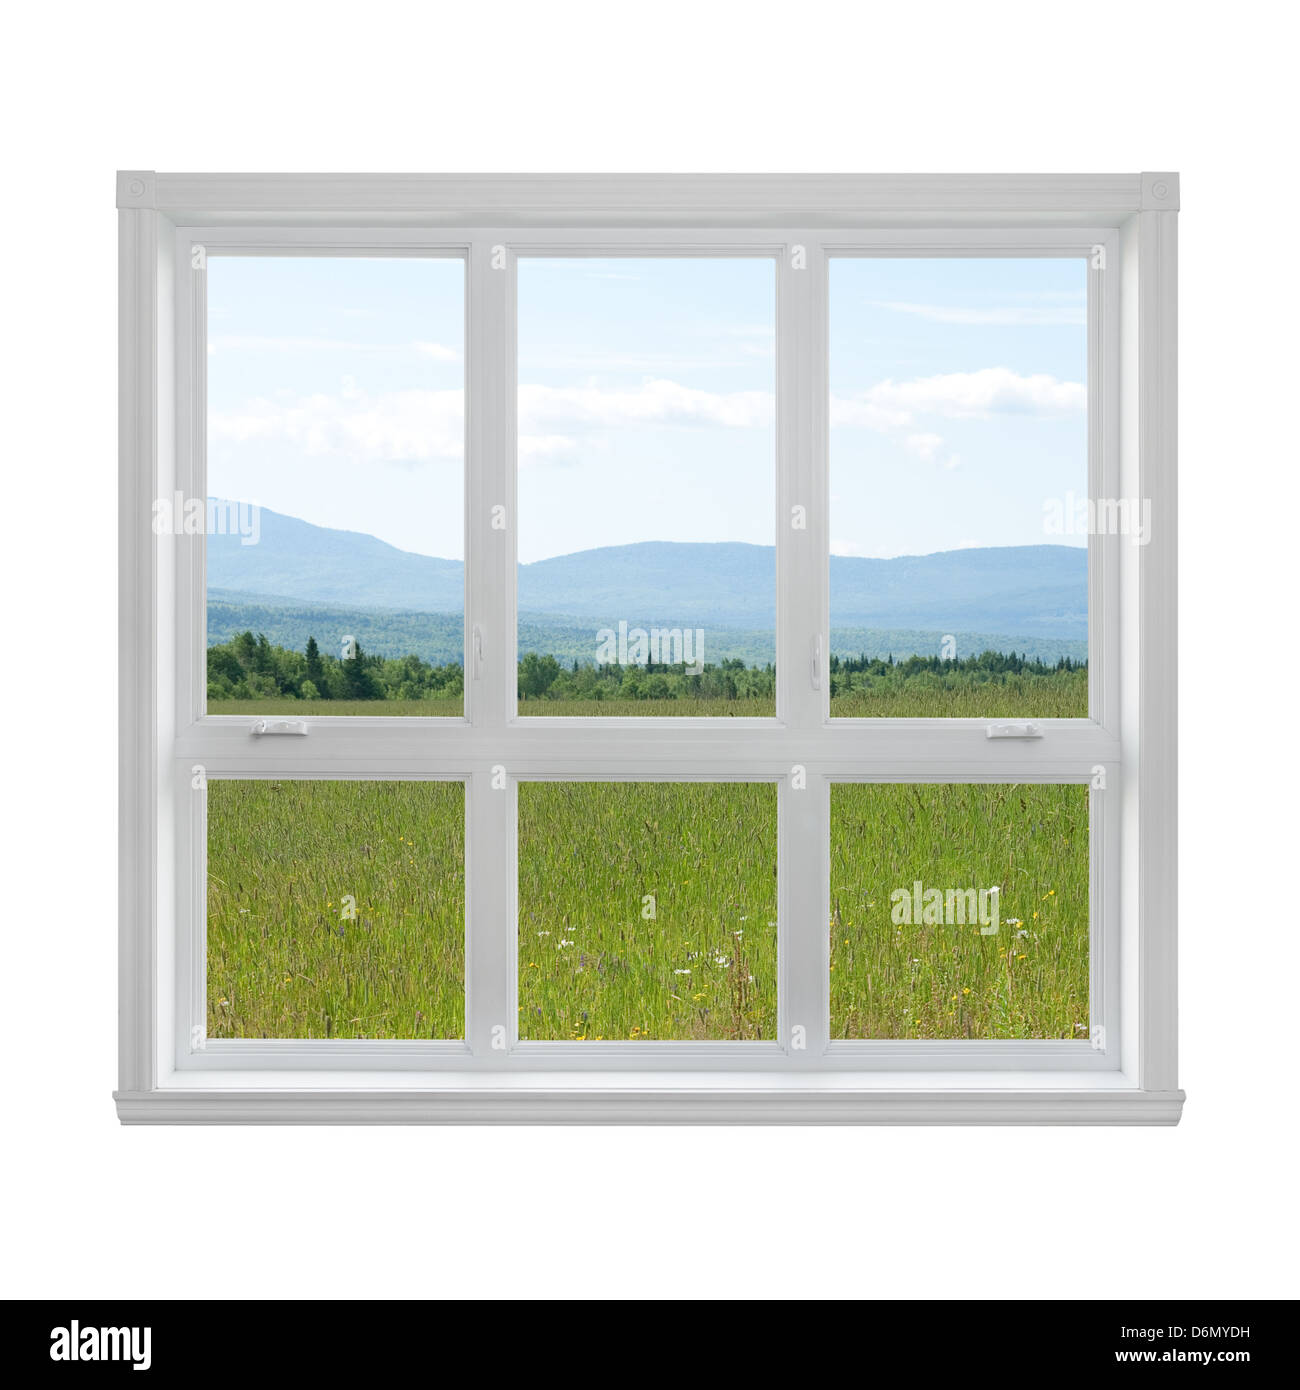 Summer field and mountains seen through the window. - Stock Image